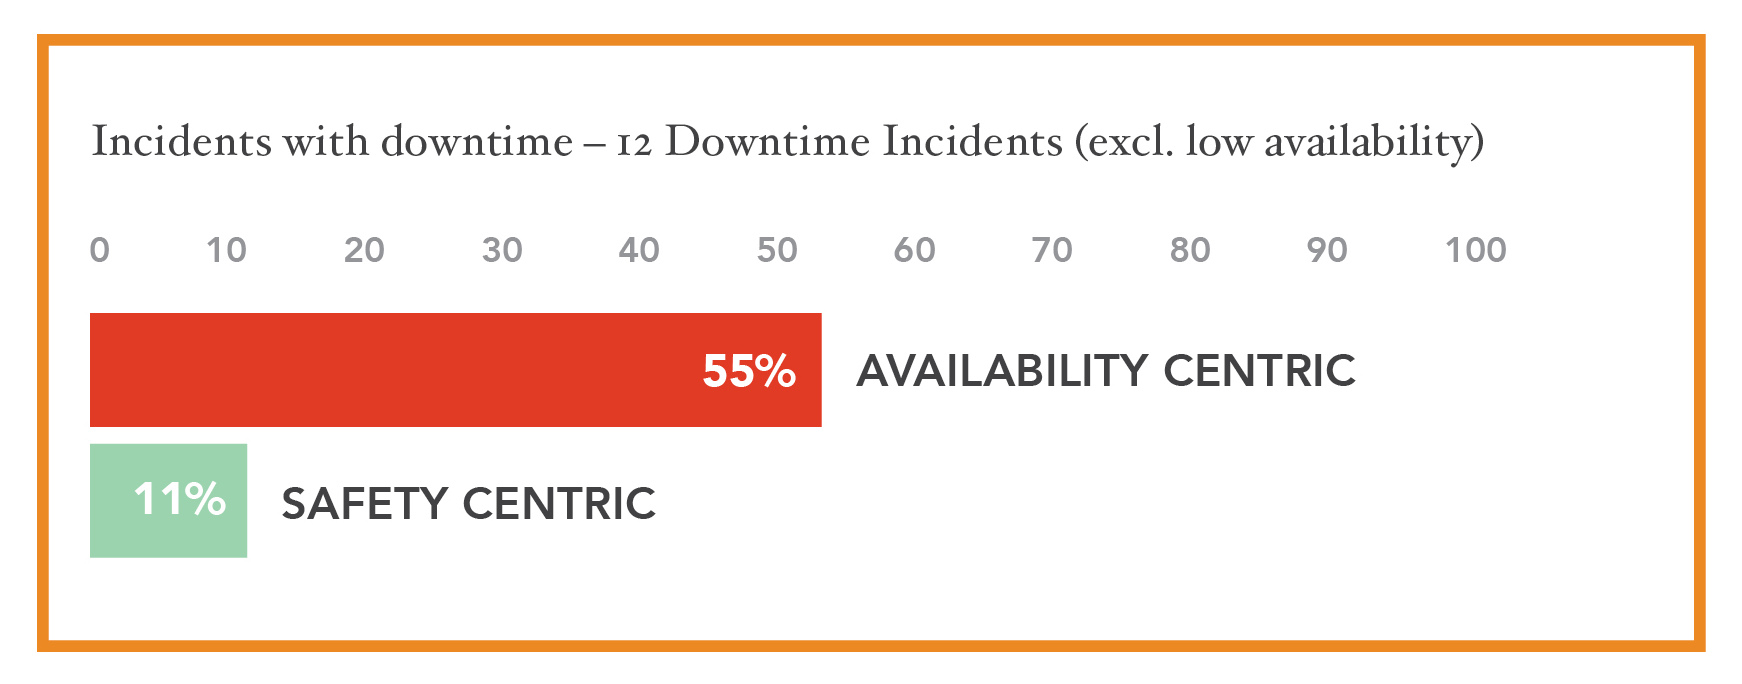 Figure 8: Downtime Incidents